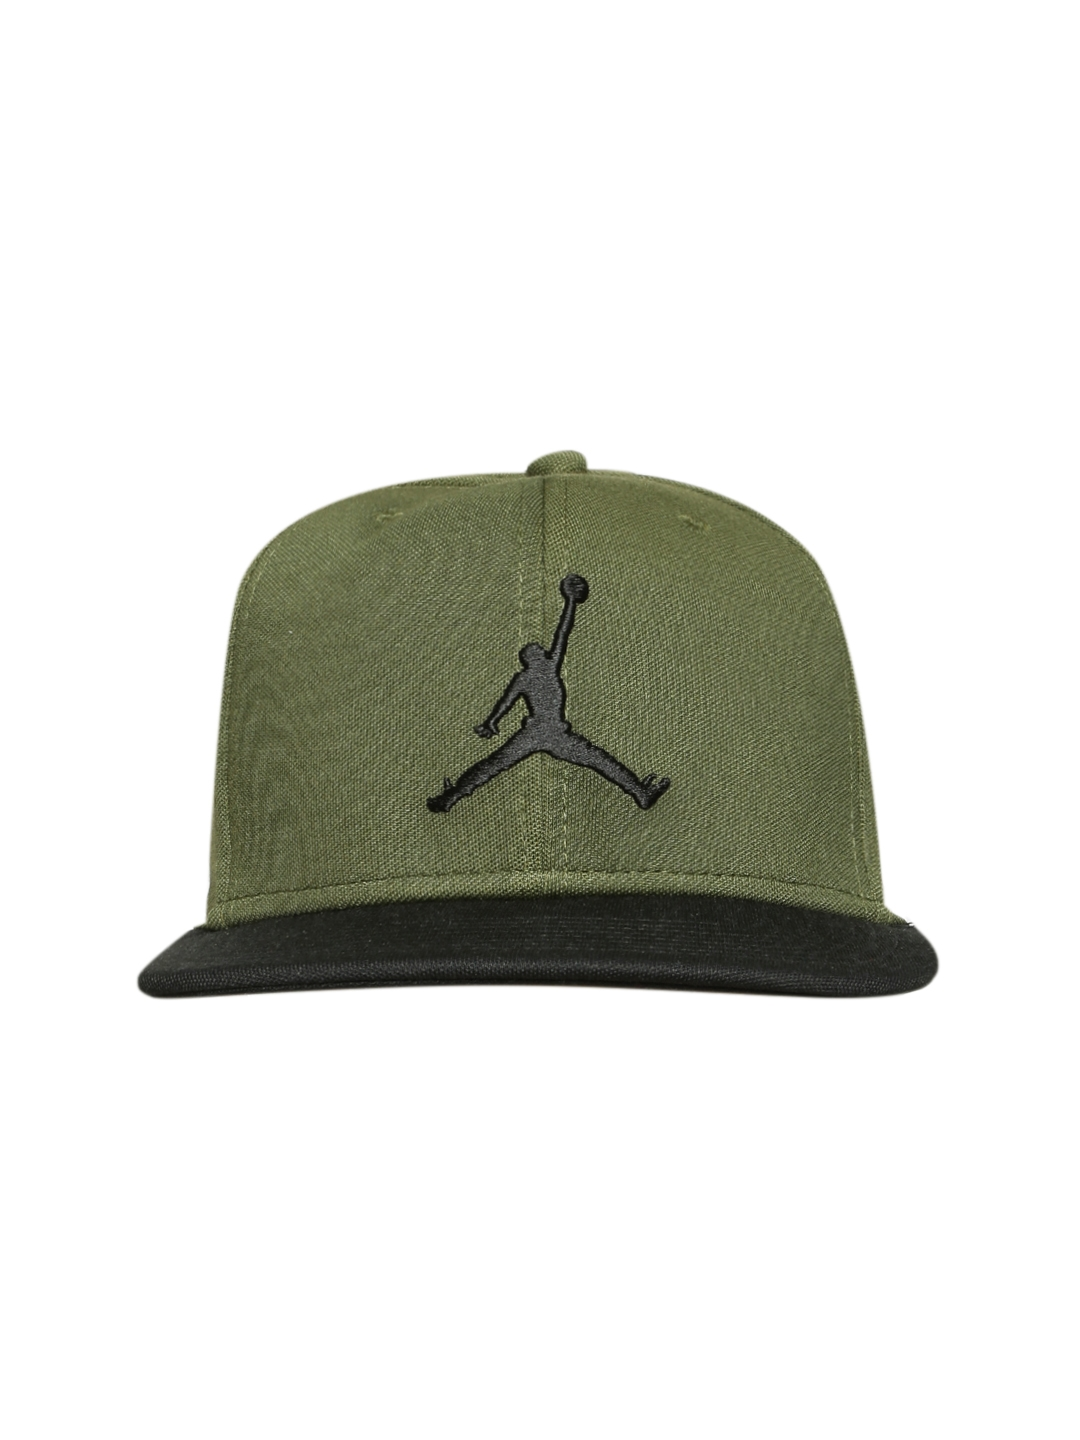 1896f375662 Buy Nike Unisex Olive Green JORDAN JUMPMAN Snapback Cap - Caps for ...